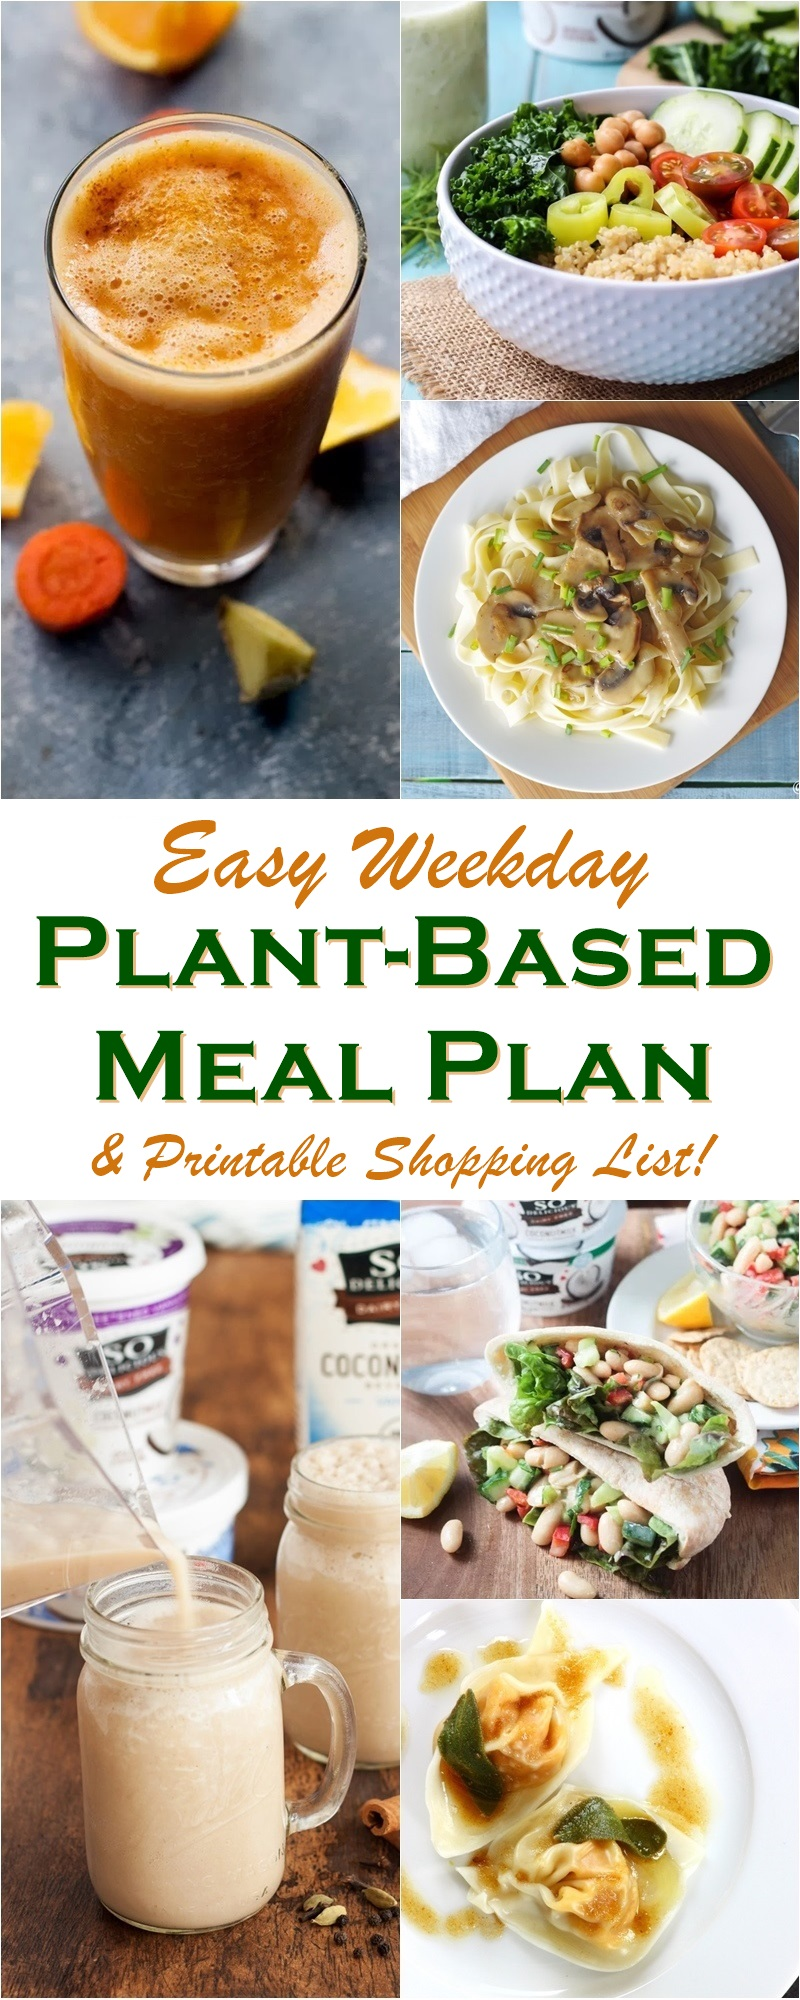 Easy weekday plant based meal plan printable shopping list easy weekday plant based meal plan new delicious dairy free and vegan recipes forumfinder Choice Image